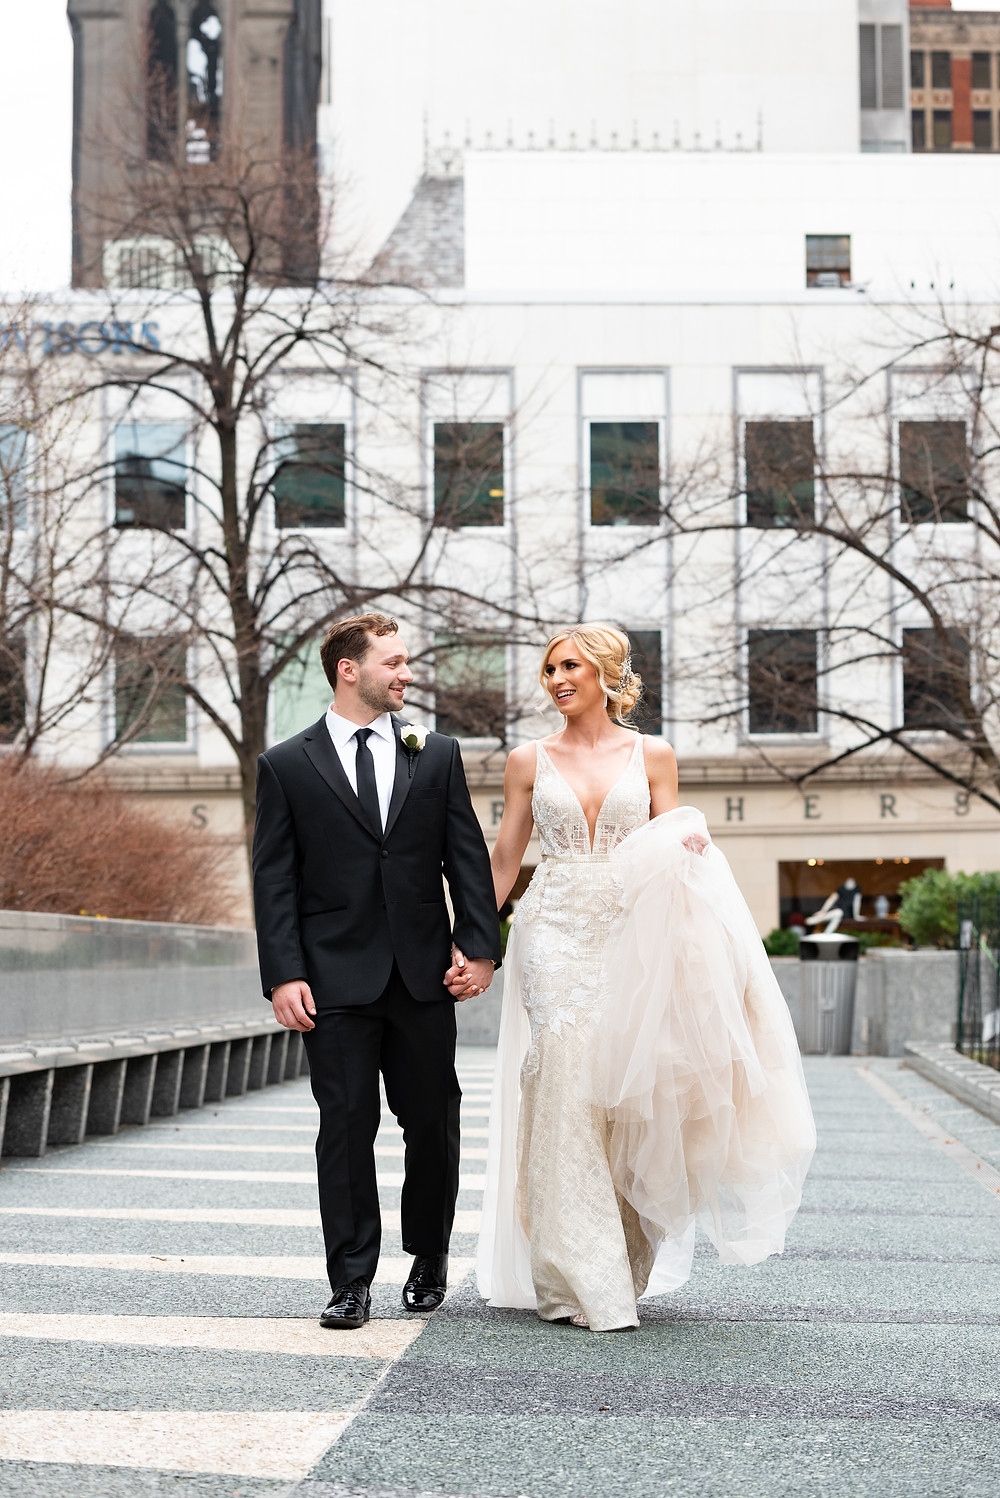 Bride and groom walking and holding hands in Mellon Square